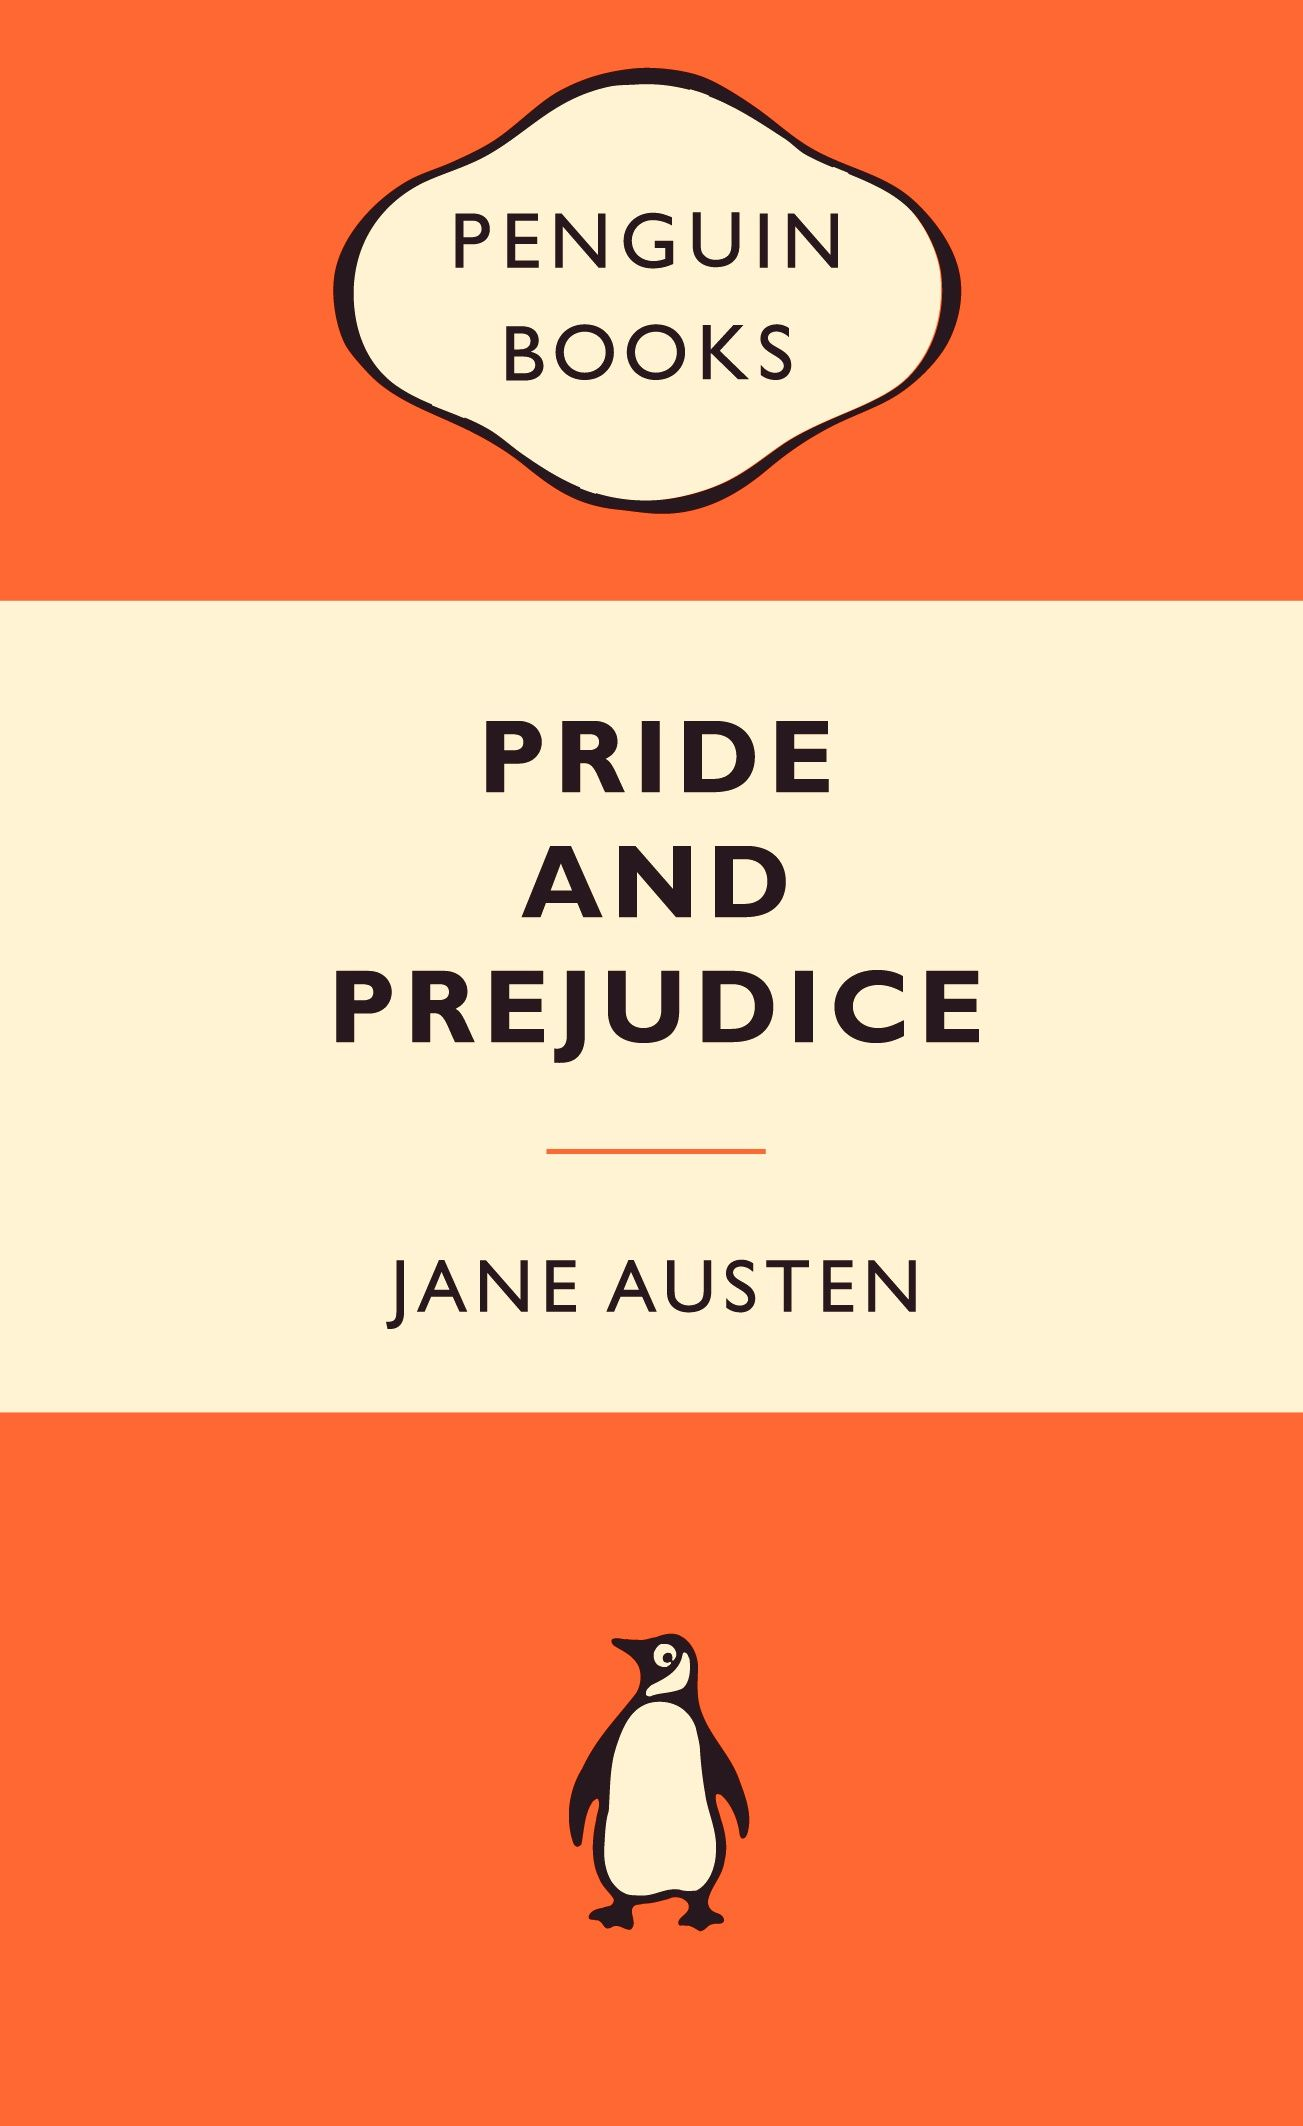 can a couple recover from as bad a first impression as mr darcy s can a couple recover from as bad a first impression as mr darcy s and ultimately form pride and prejudice